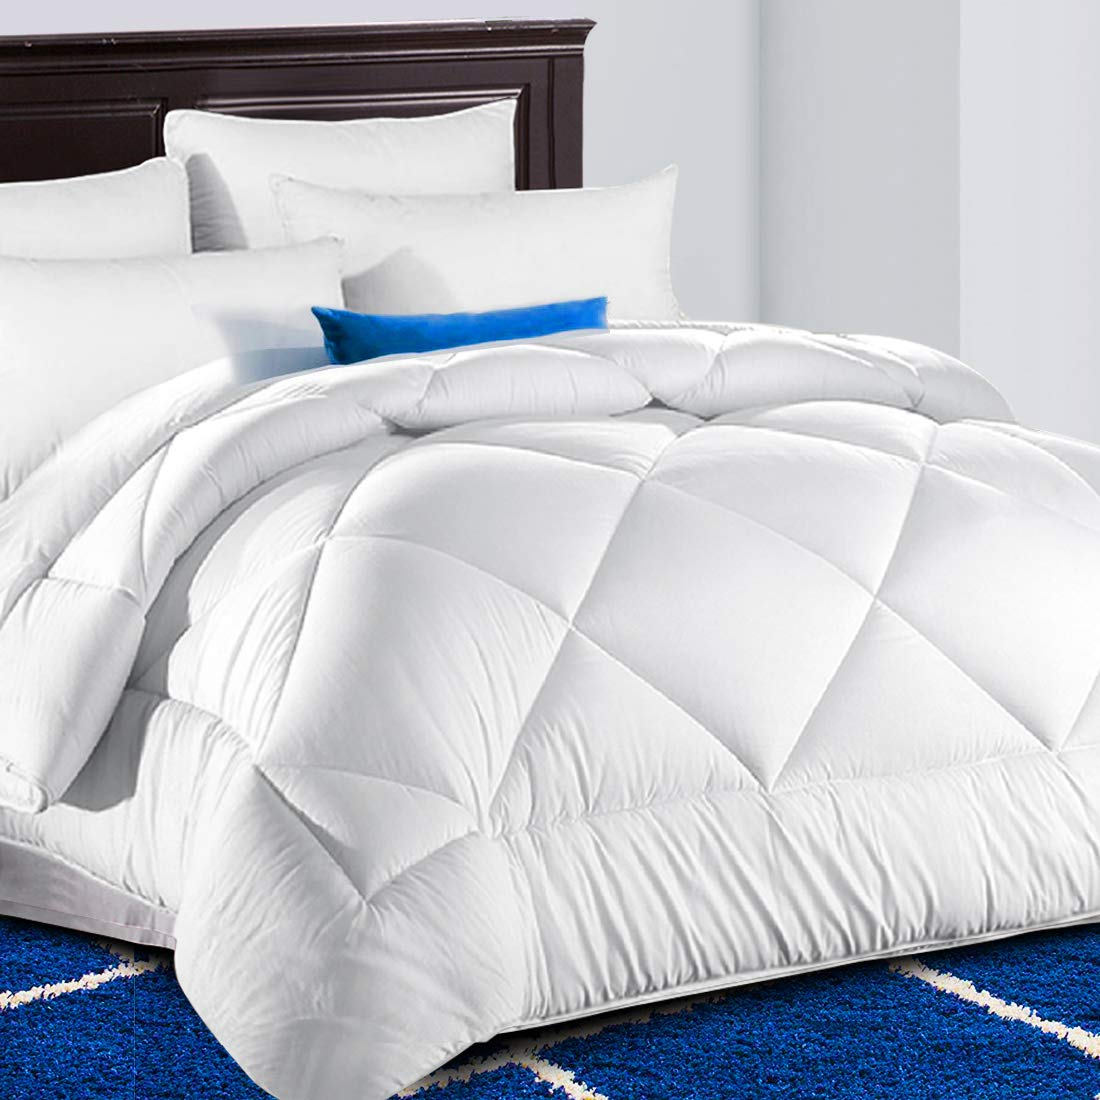 TEKAMON All Season Cal King Comforter Summer Cooling Soft Quilted Down Alternative Duvet Insert with Corner Tabs, Luxury Fluffy Reversible Hotel Collection for All Season,White,104 x 96 inches by TEKAMON